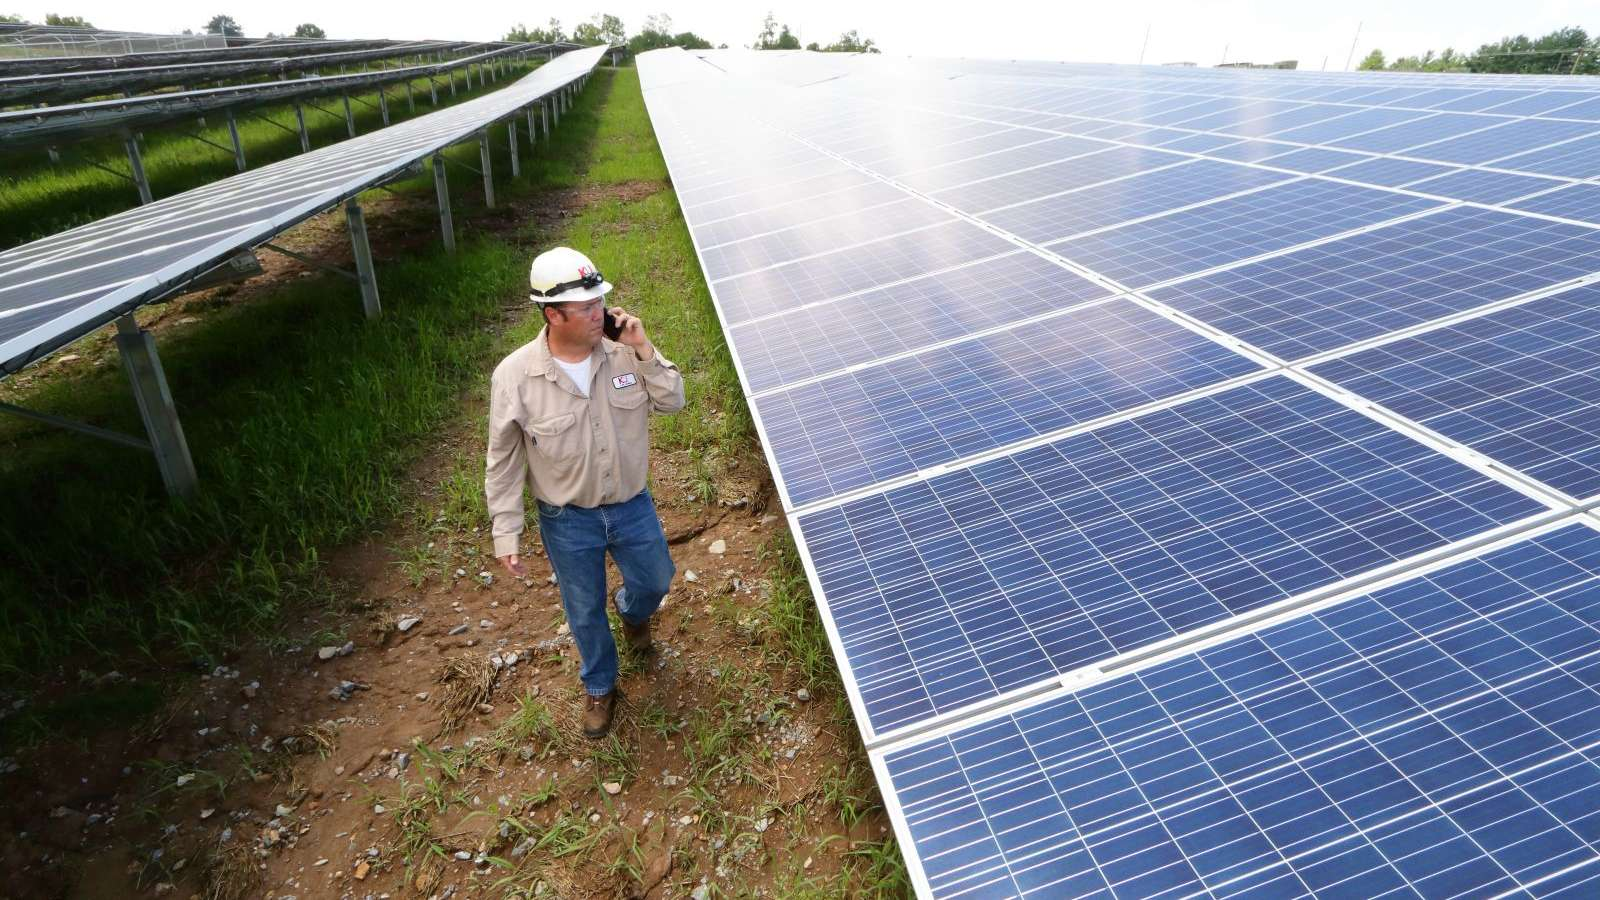 employee at E.W. Brown Solar facility on phone walking in between rows of panels